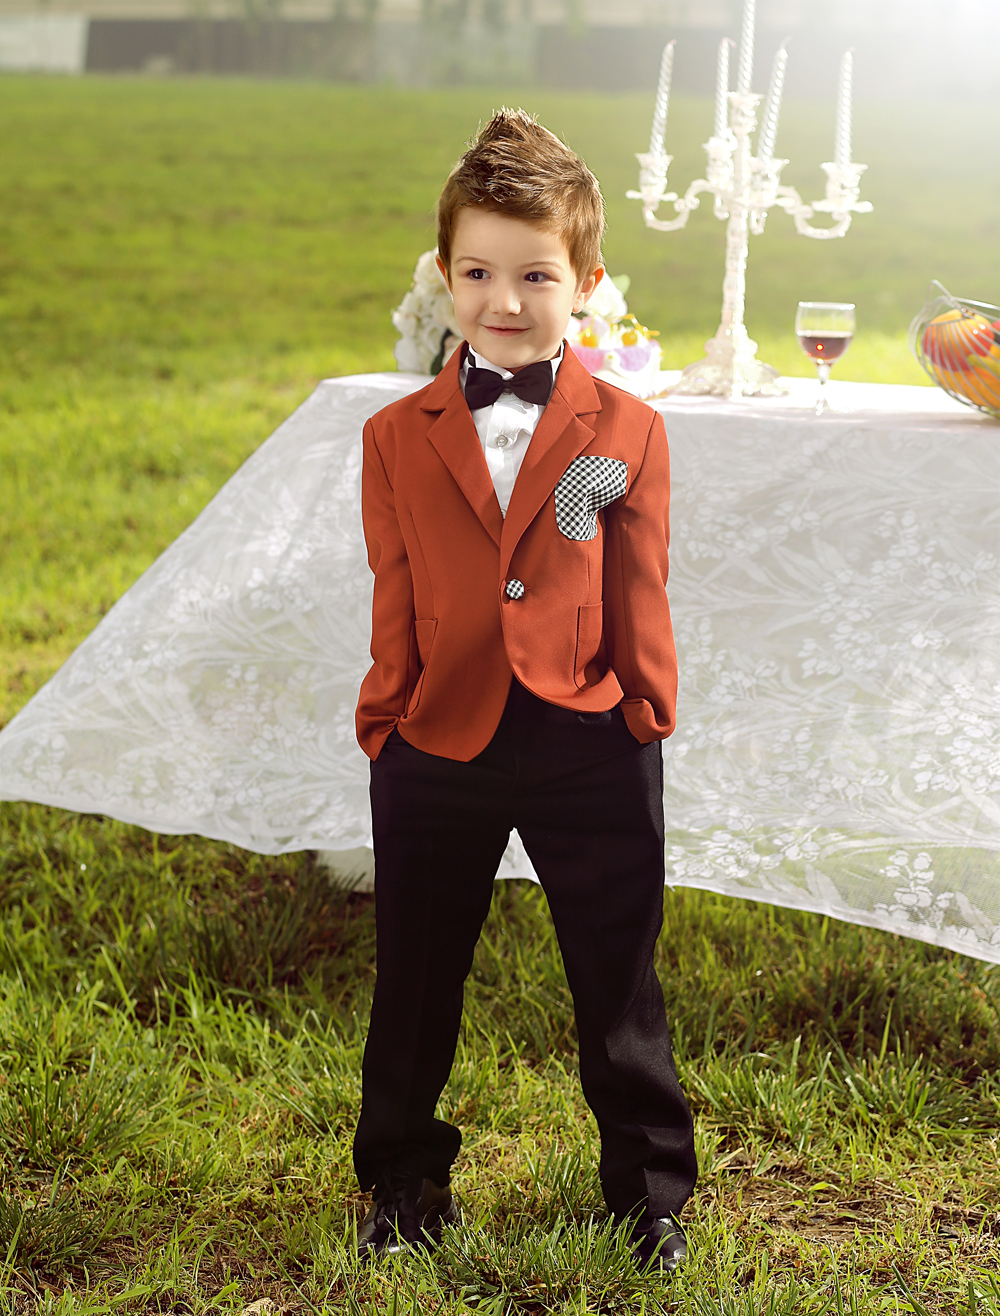 Four Pieces Luxurious Coffee color formal boys suits Ring Bearer Suits kids Tuxedo With Black Bow